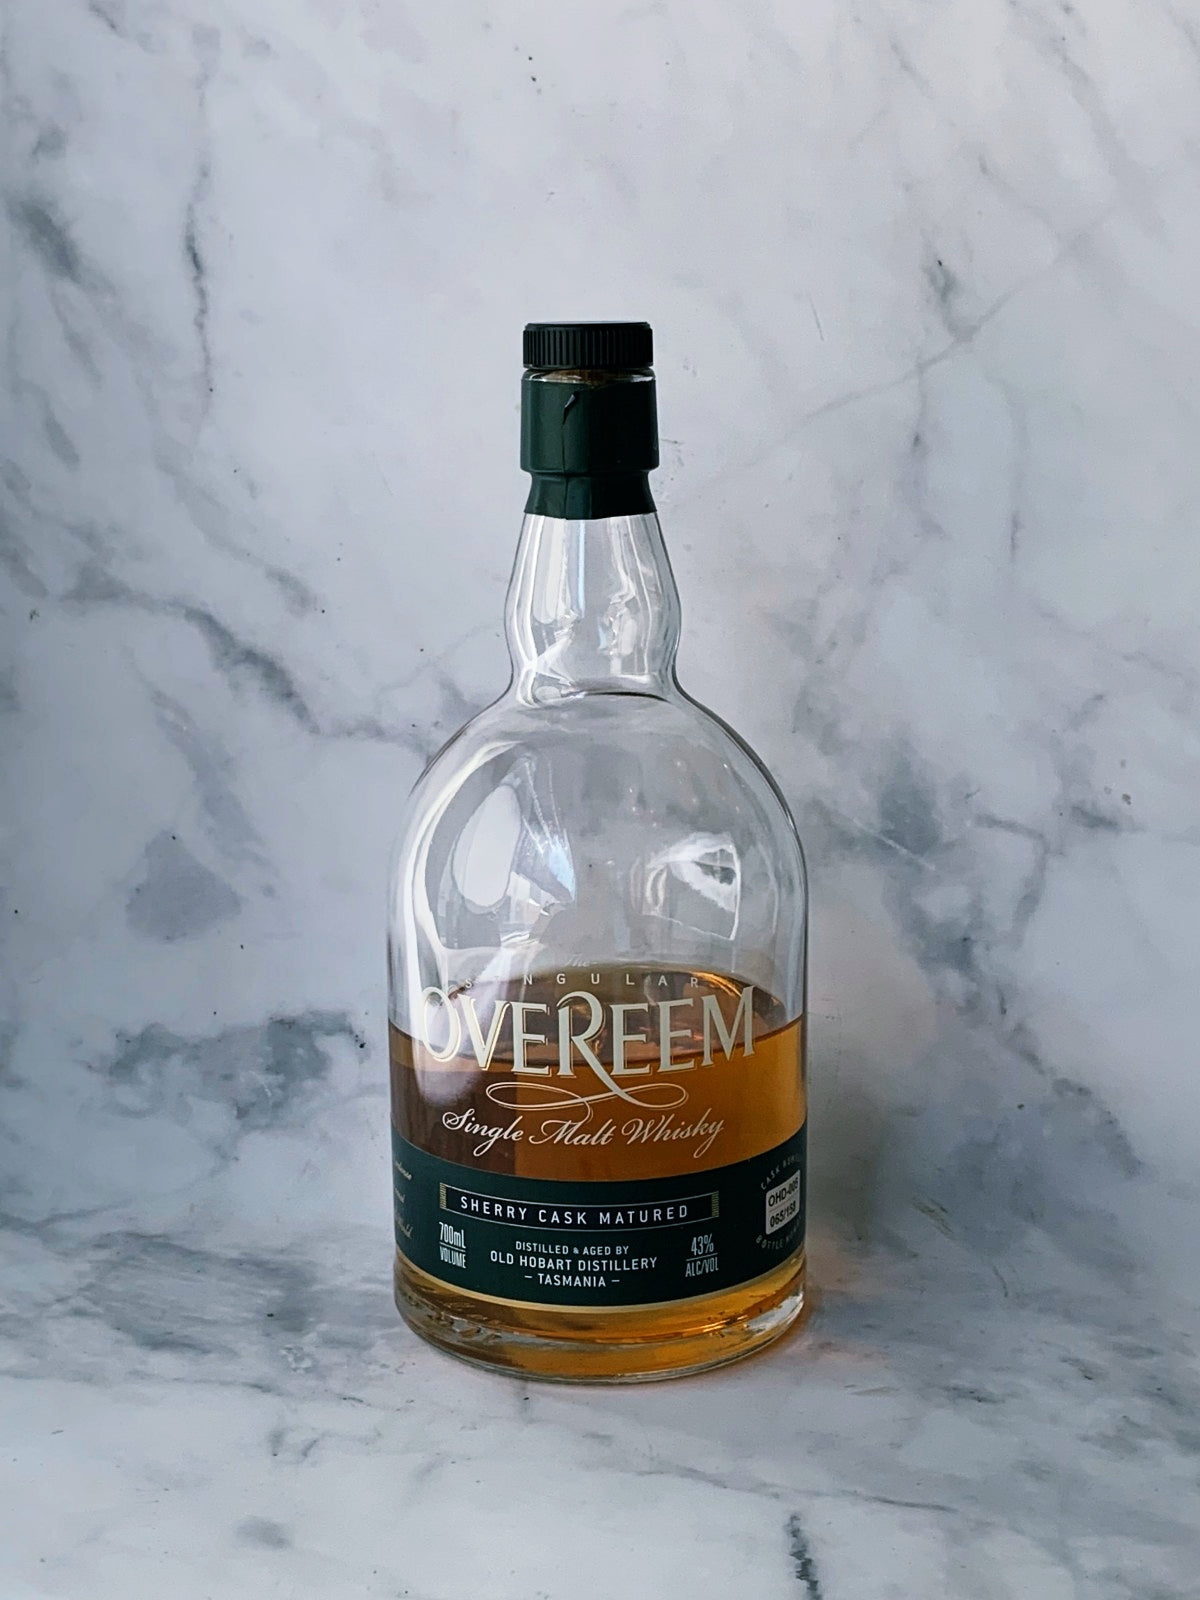 Overeem Sherry Cask Single Malt Whisky (50ml serve)